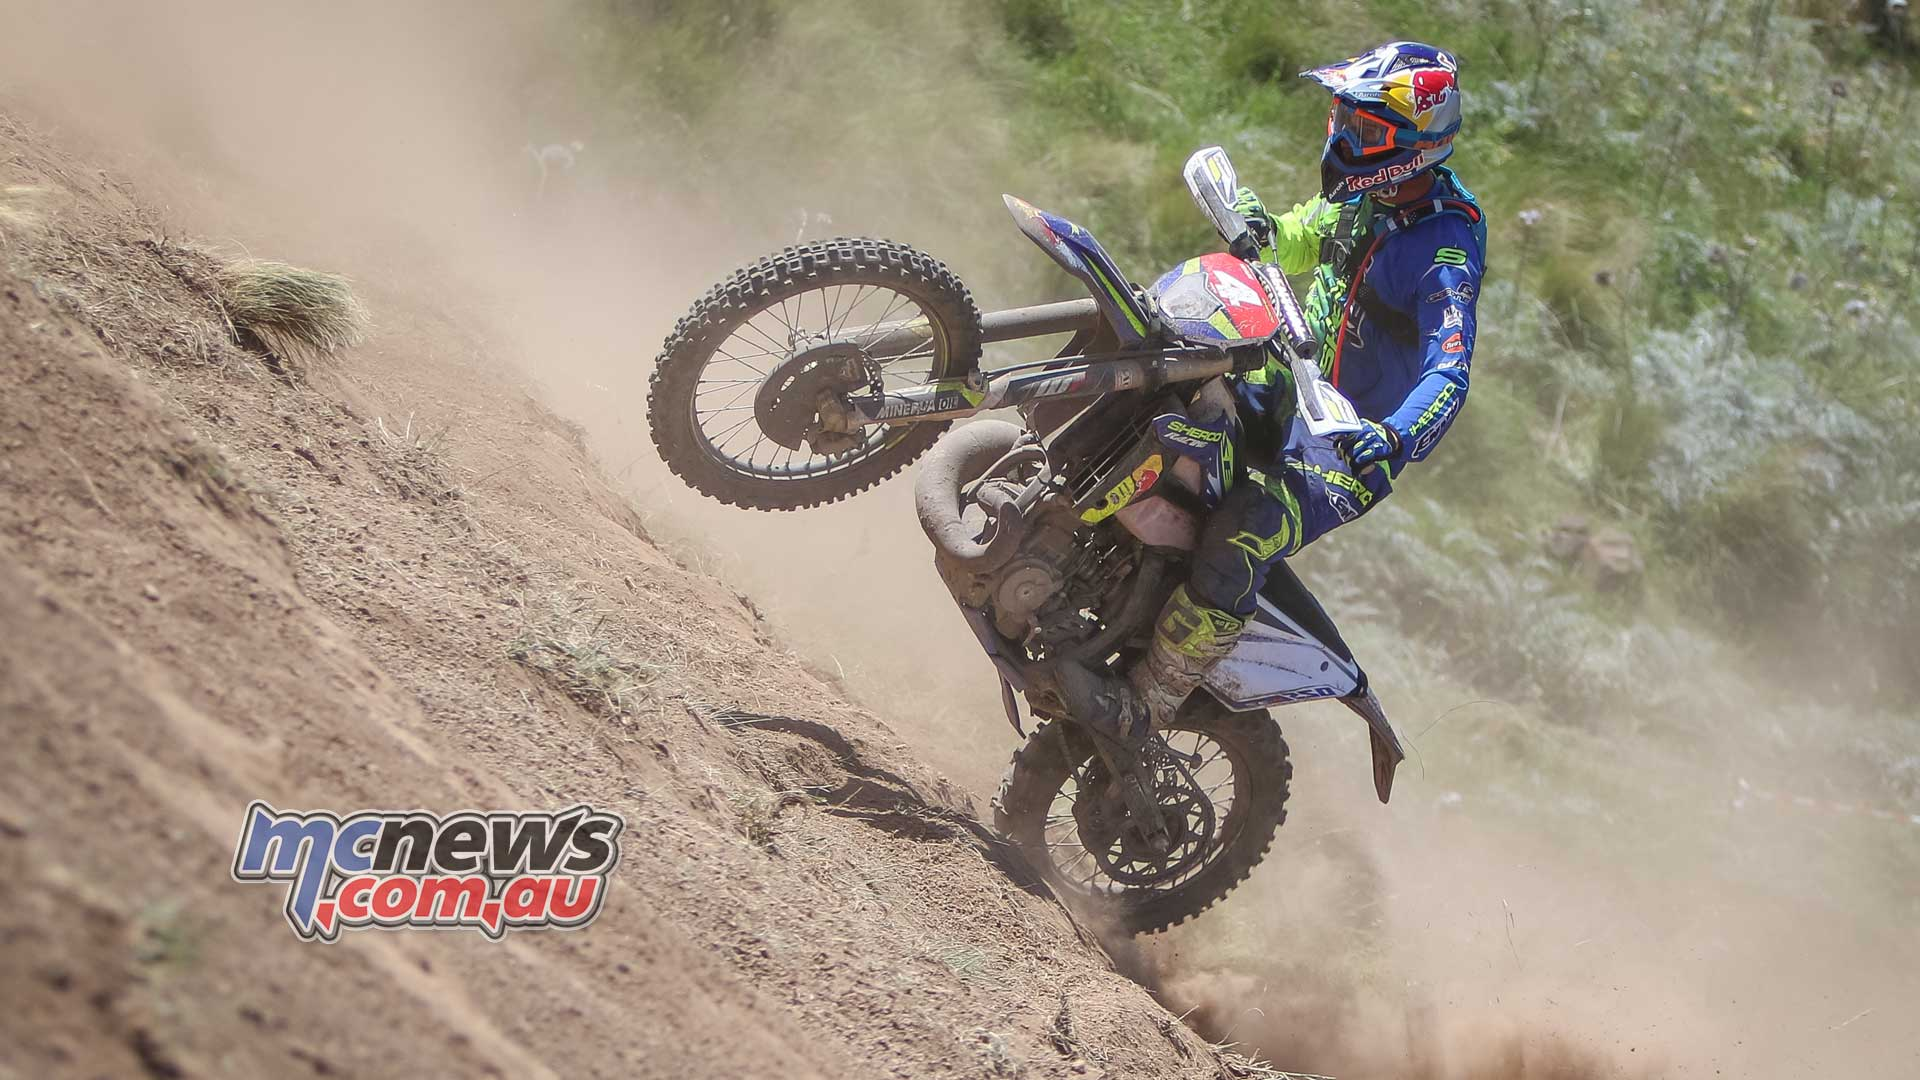 Wade Young conquers Wildwood Extreme Enduro - Kane O'Rourke Photography